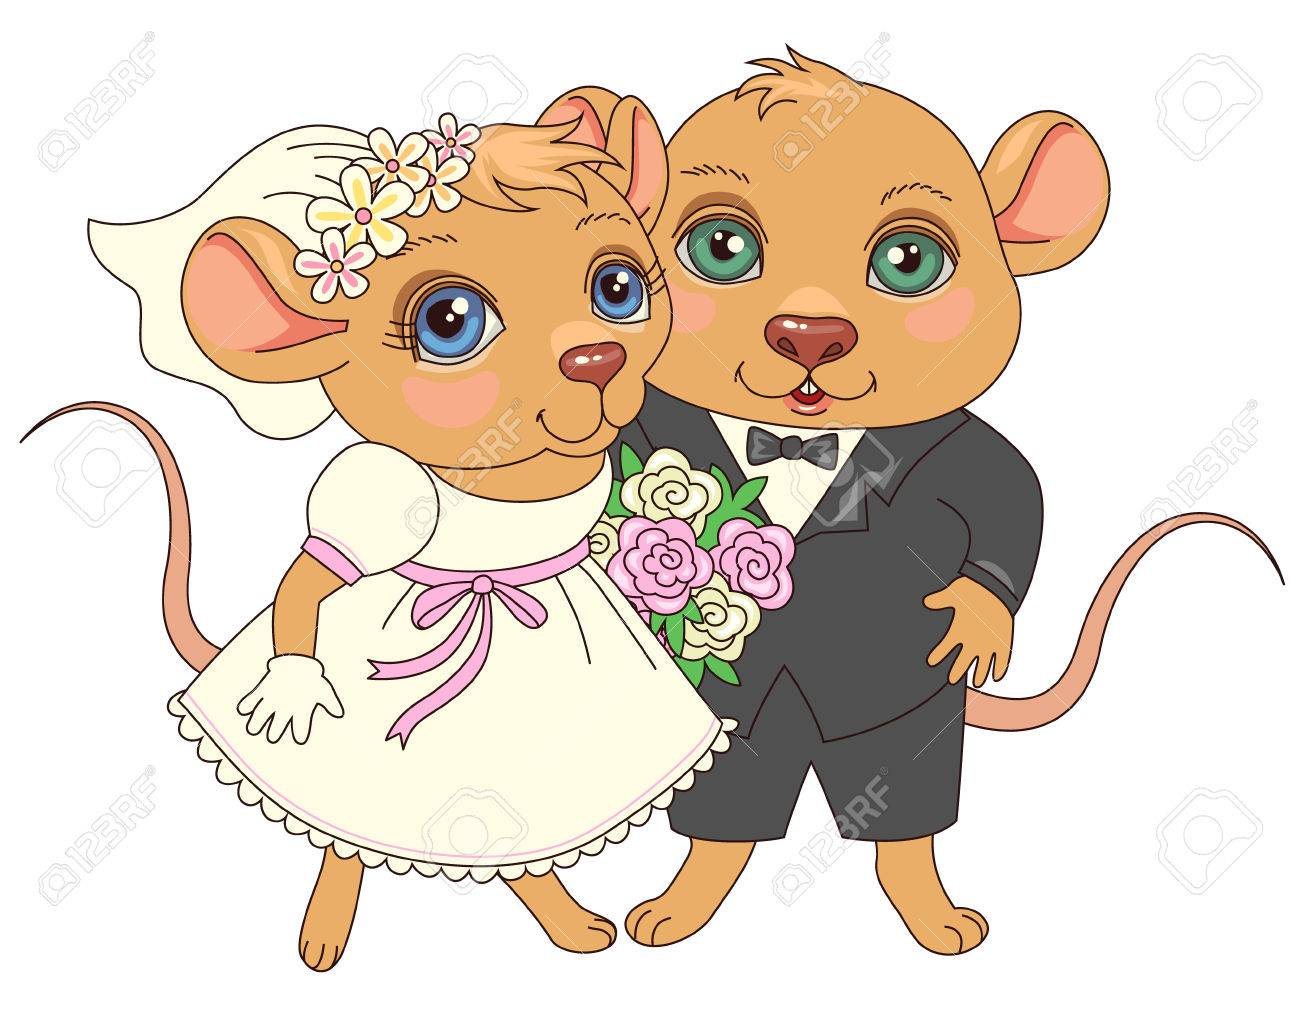 cute cartoon characters couple of happy mice of newlyweds royalty